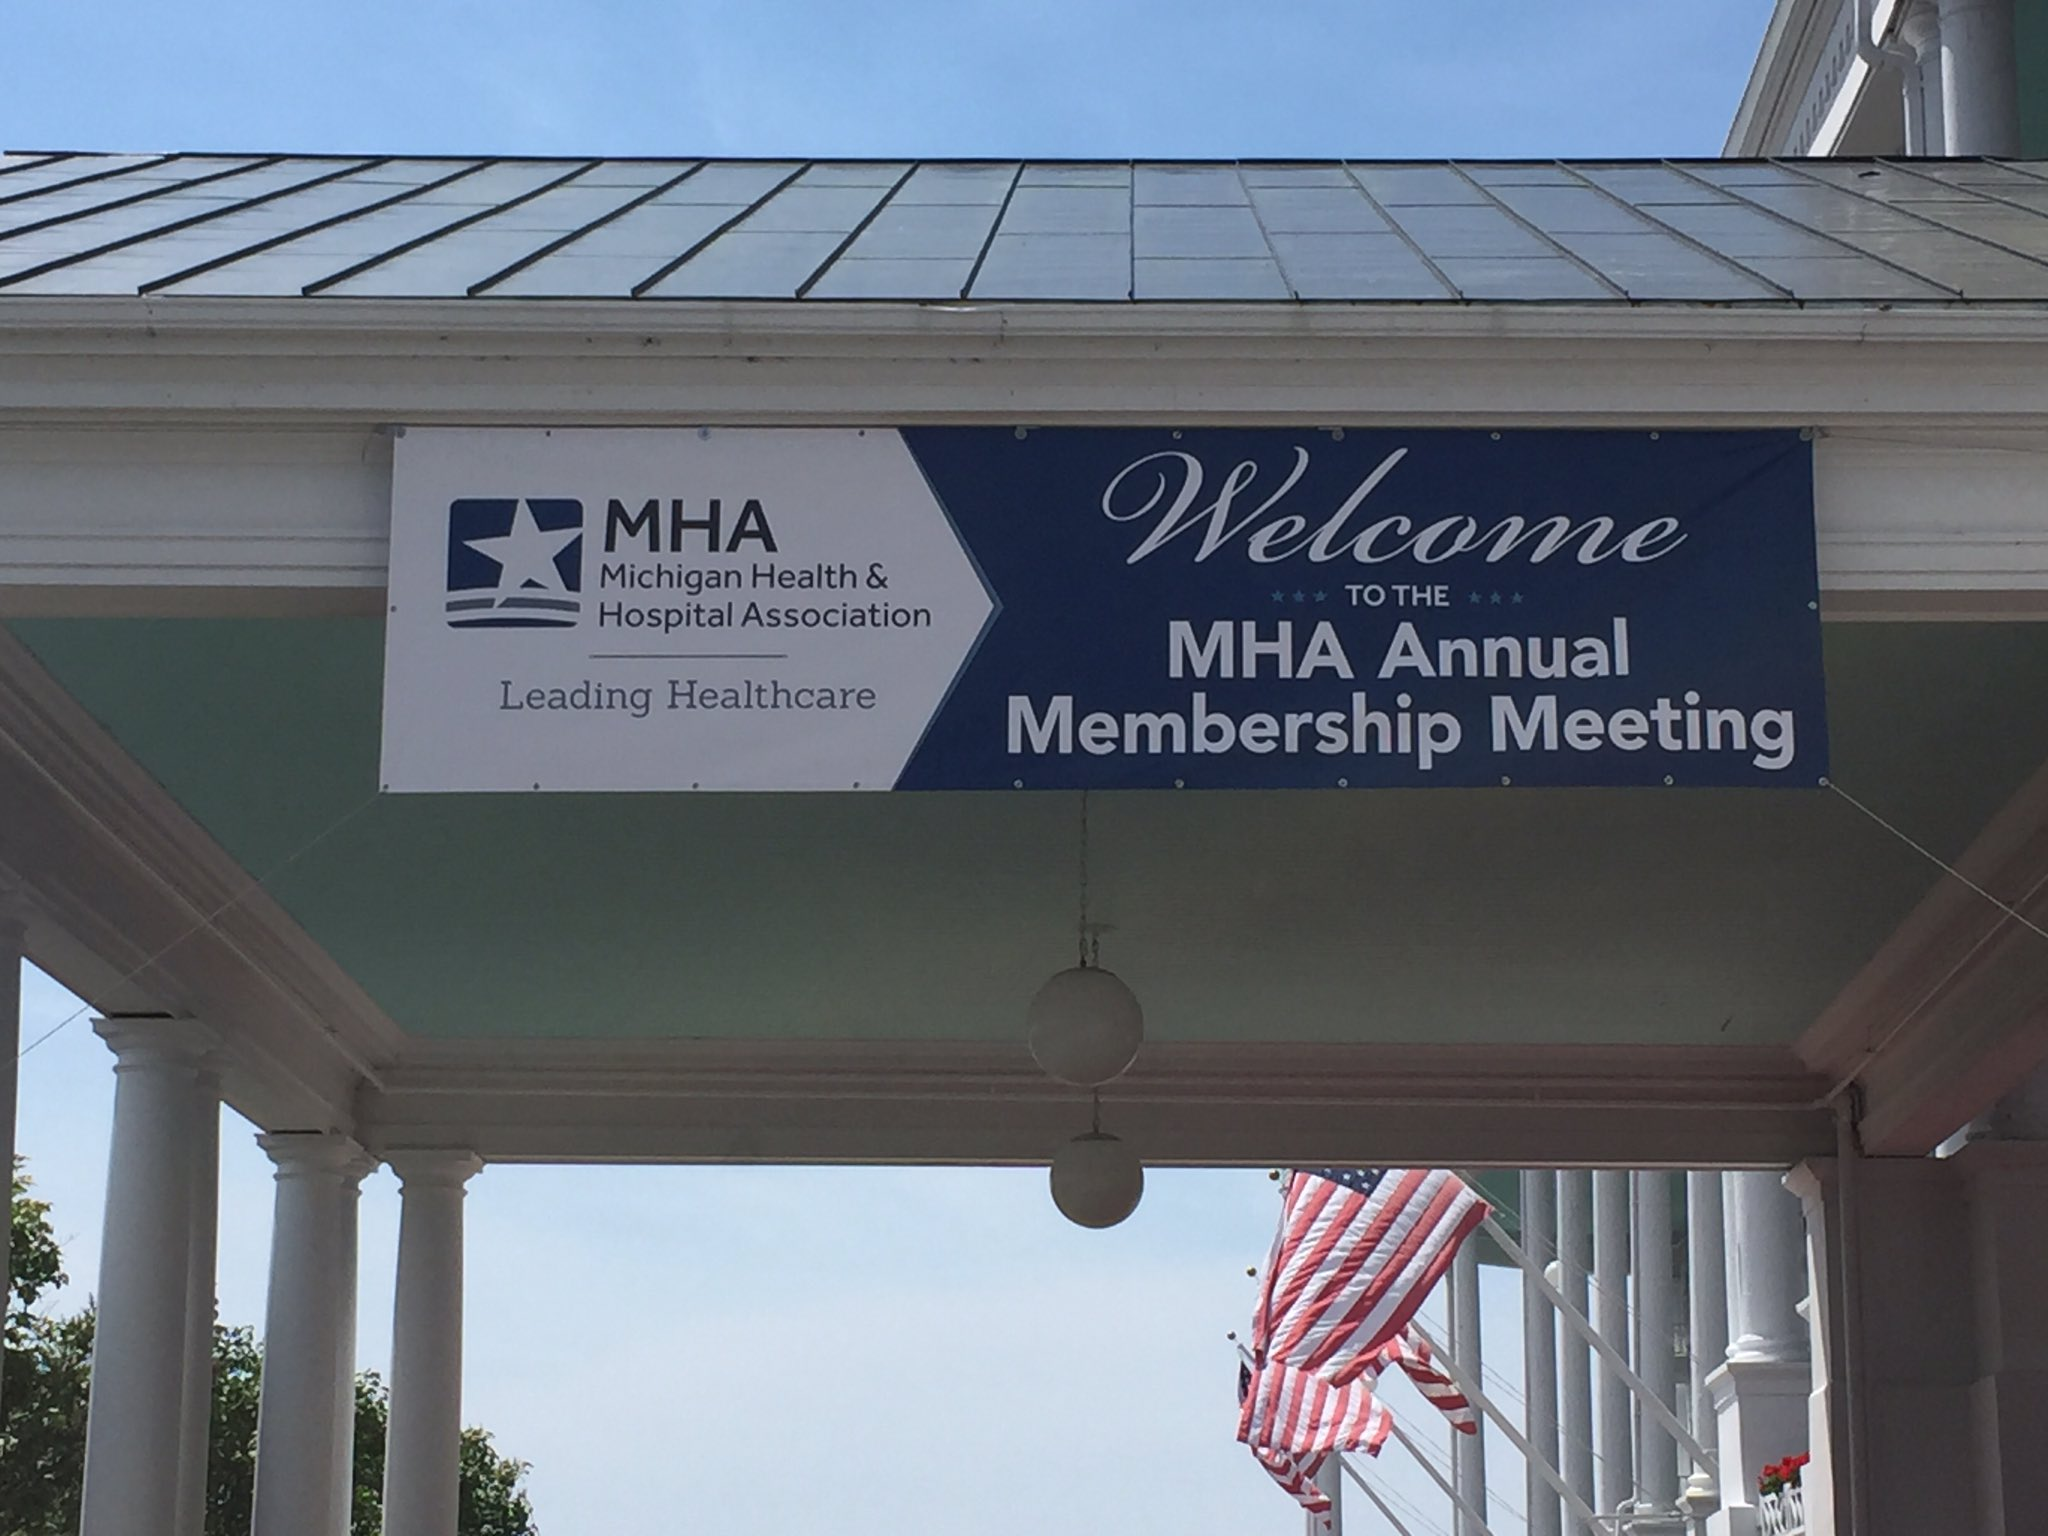 We're excited to welcome back members, their families, sponsors & special guests to our #MHAannual Mtg! Follow us this week for live updates https://t.co/njoZbs8l32